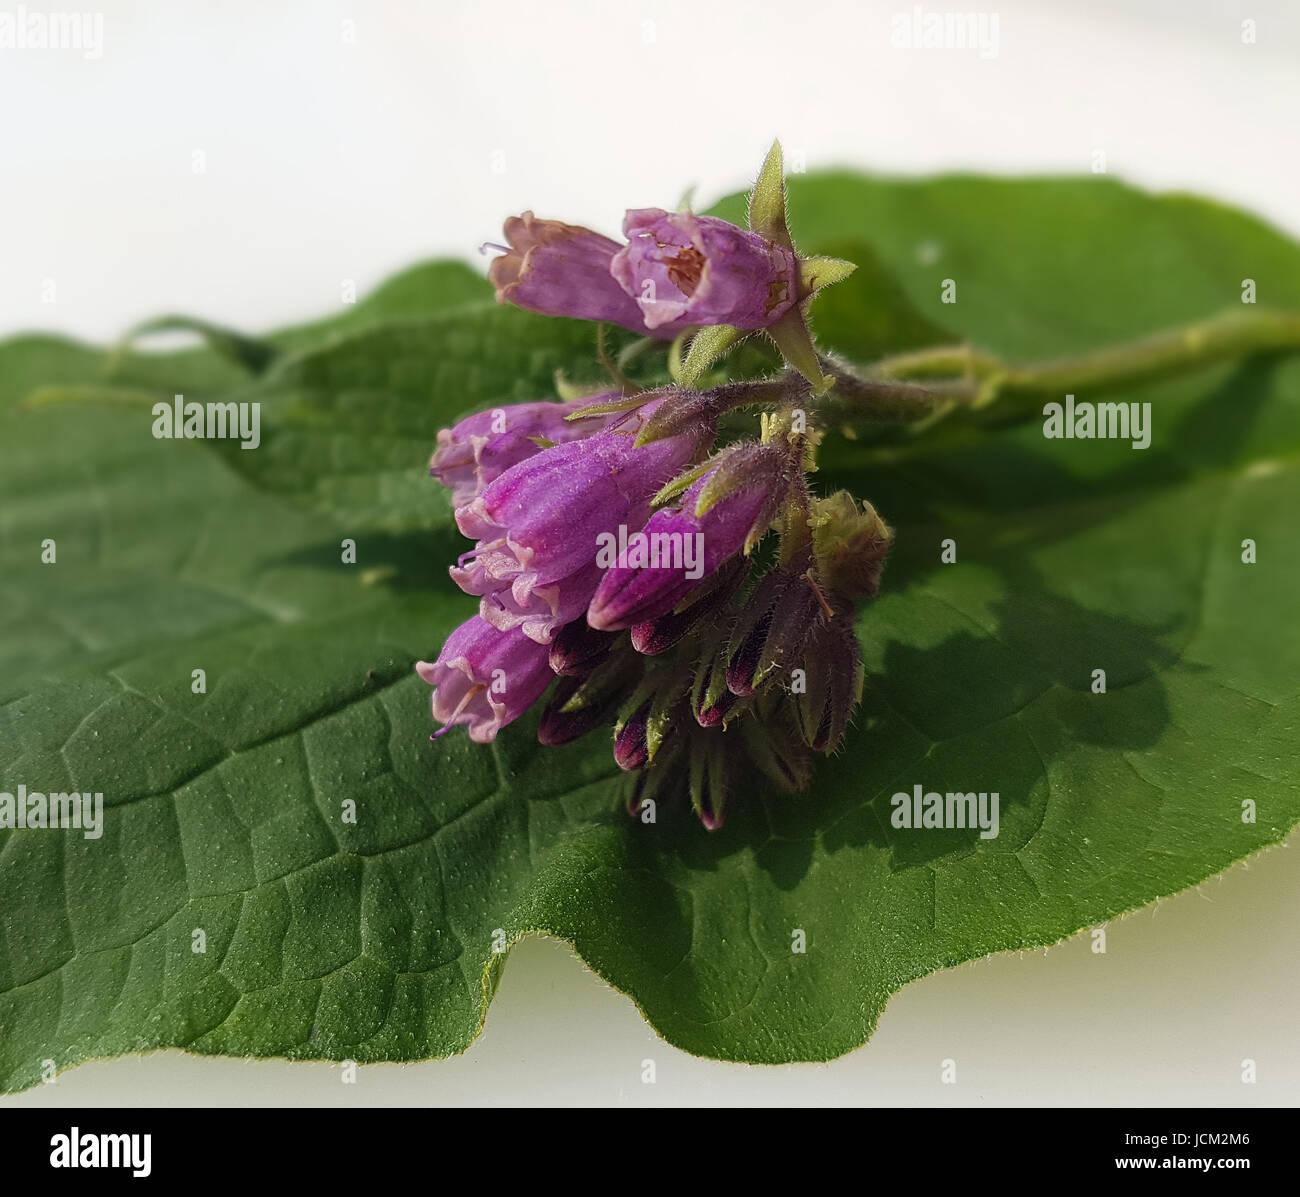 Beinwell, Symphytum, officinale, Heilpflanze - Stock Image